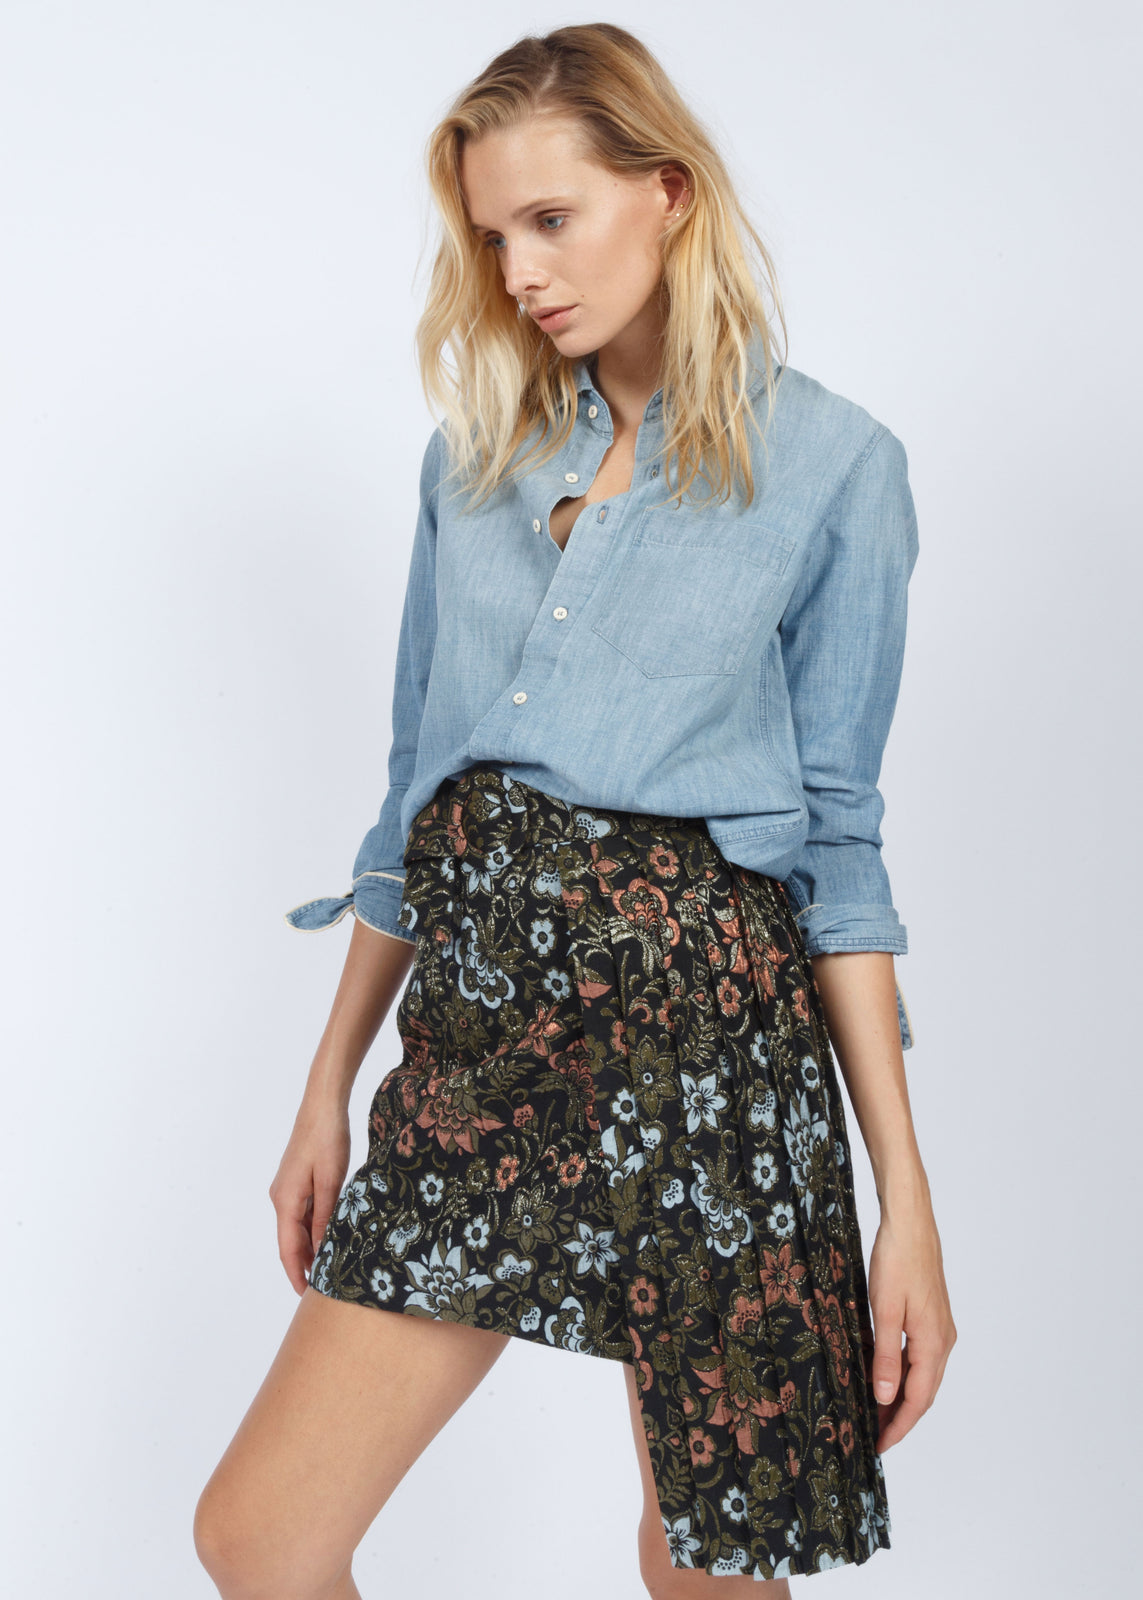 SKIRT BROWN FLORAL PRINT